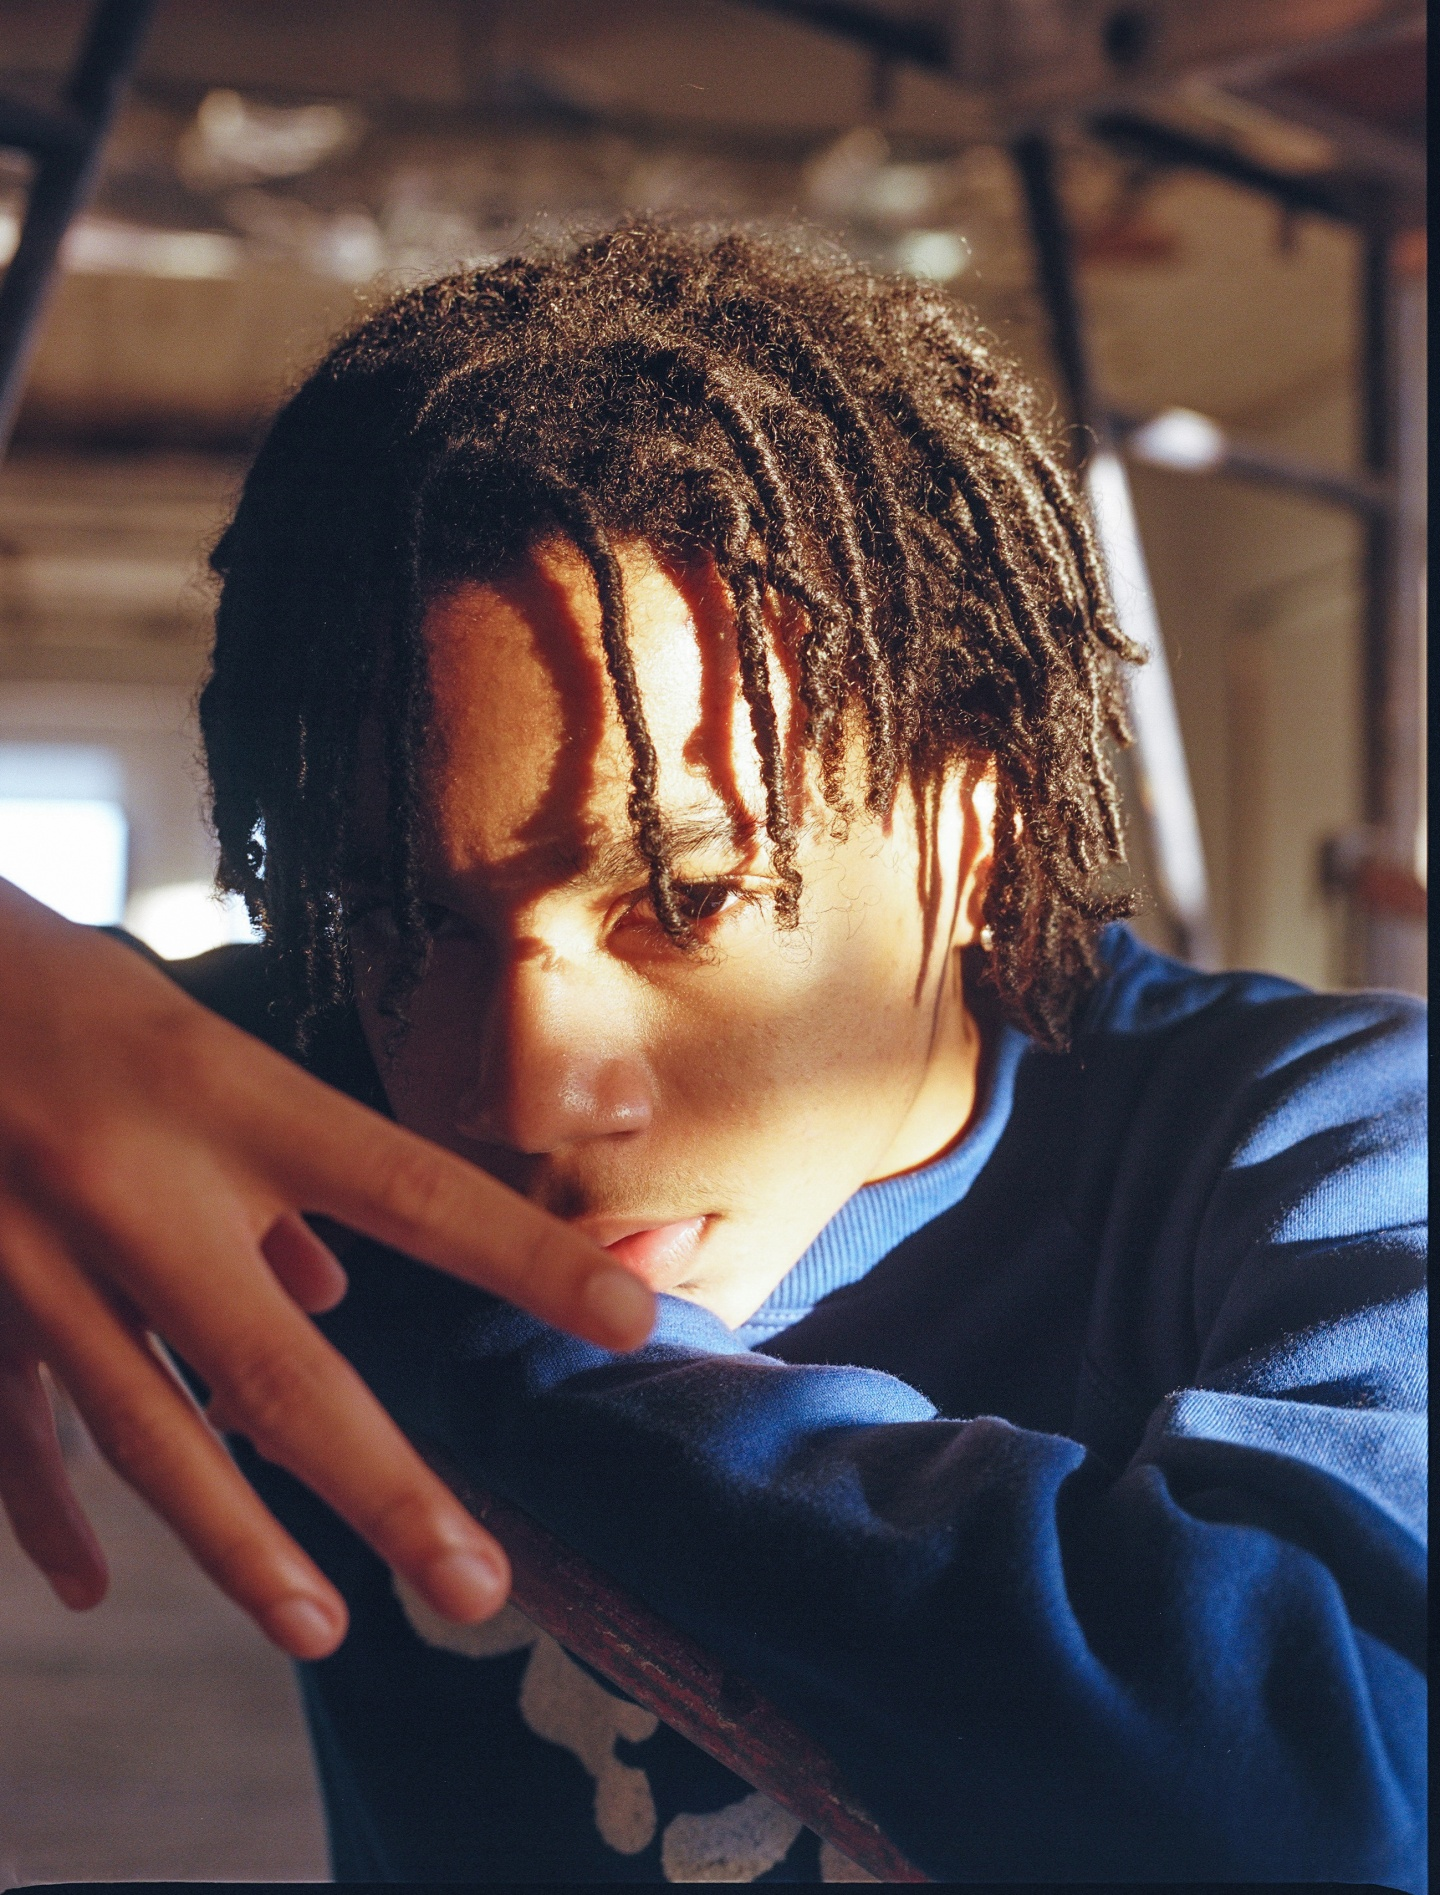 How YBN Nahmir went from gamer kid to rising rapper